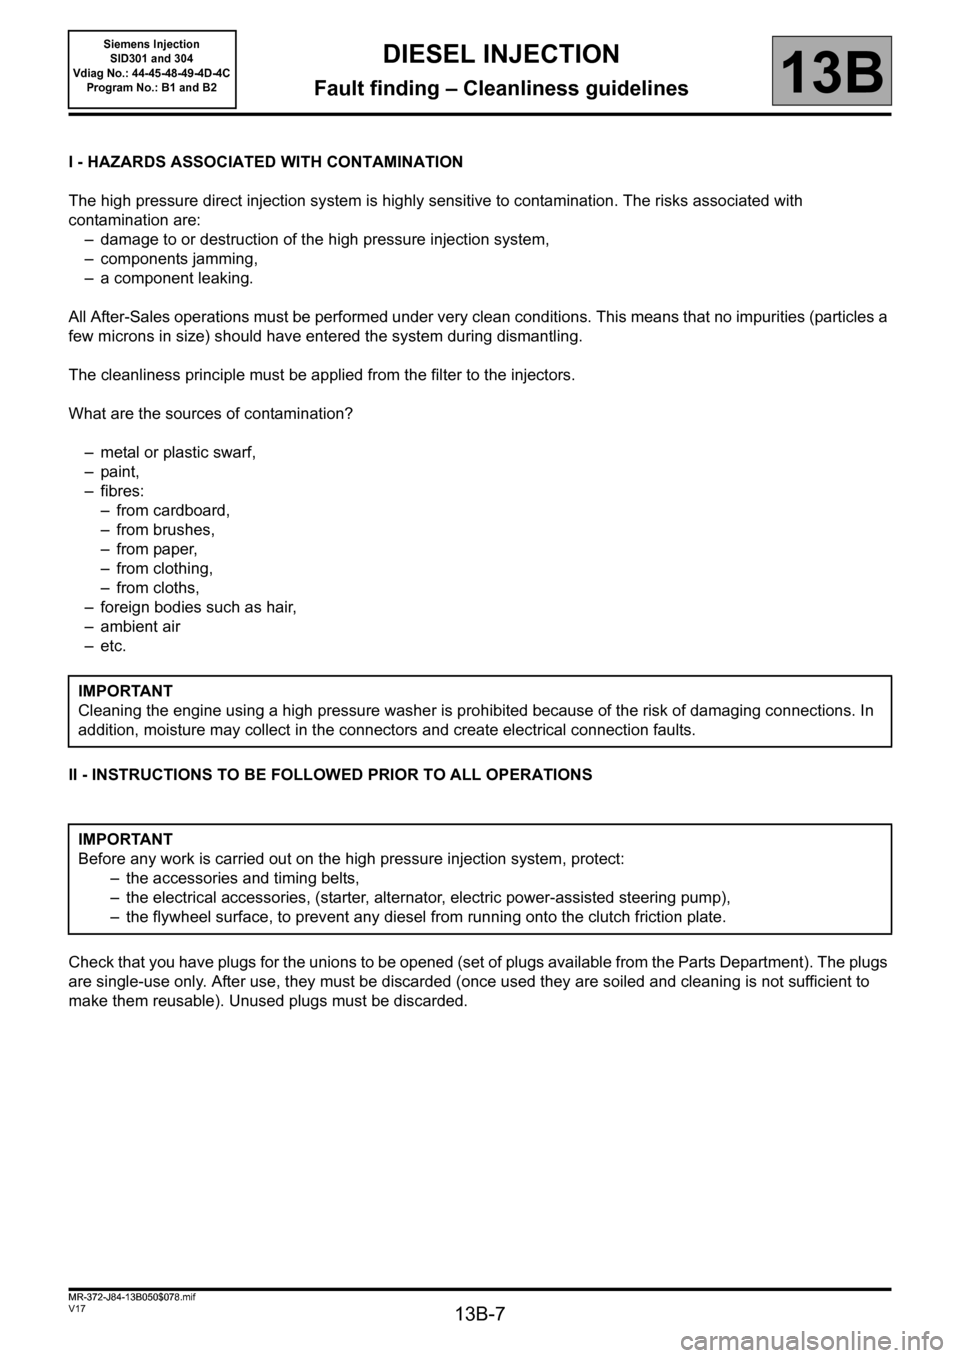 RENAULT SCENIC 2011 J95 / 3.G Engine And Peripherals Siemens Injection Workshop Manual, Page 7